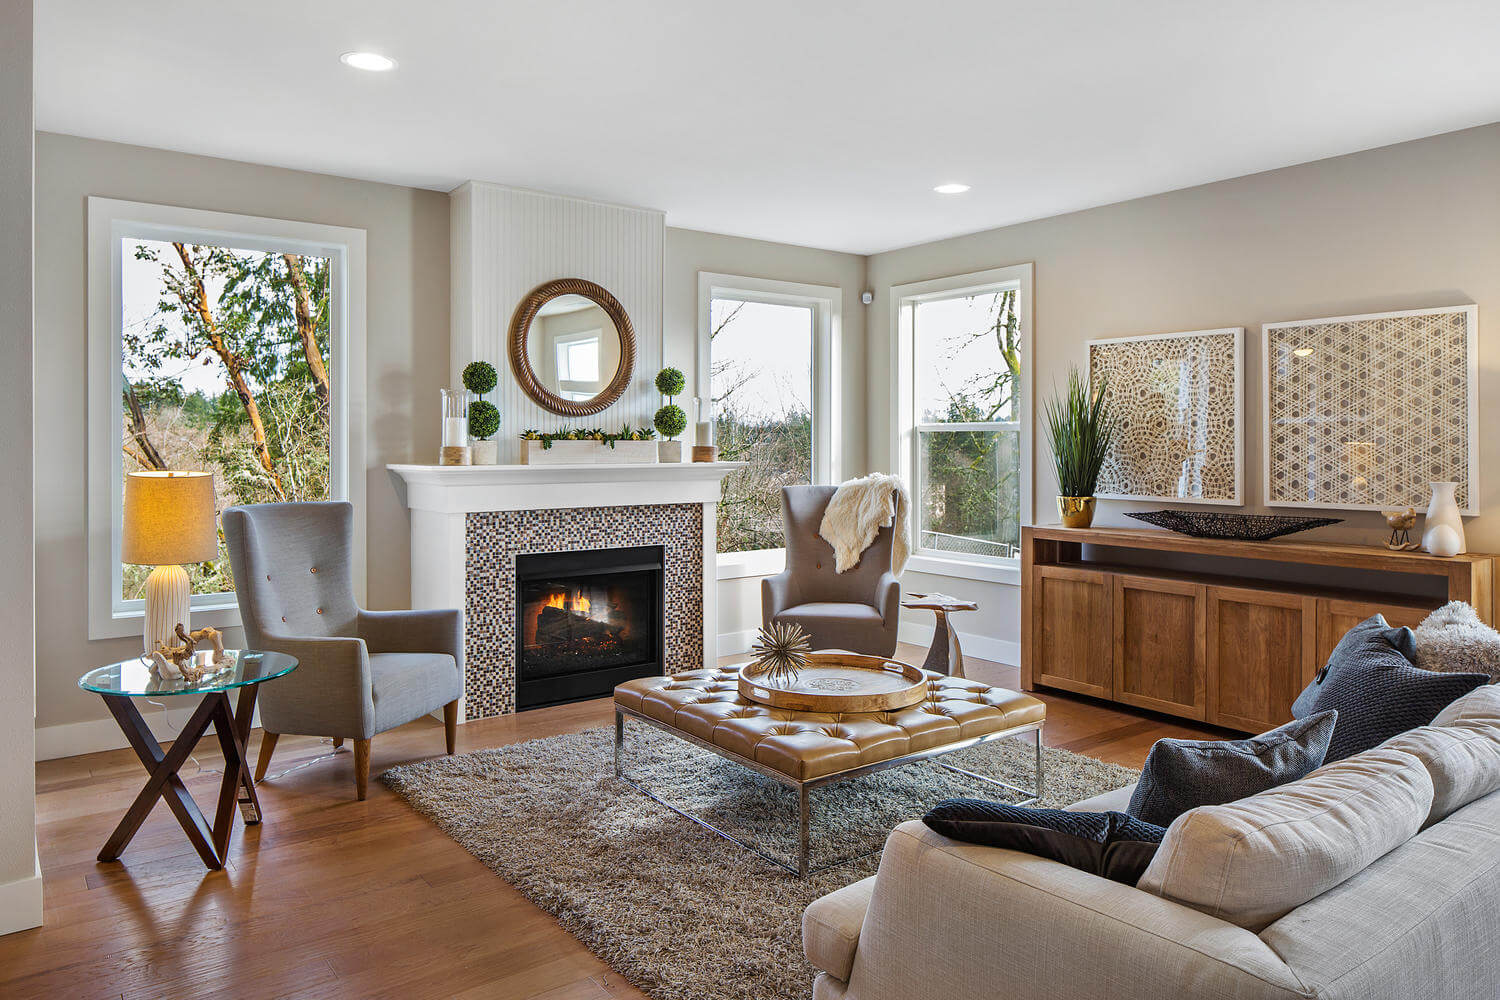 Design Recipes: How to lighten, brighten your home this spring